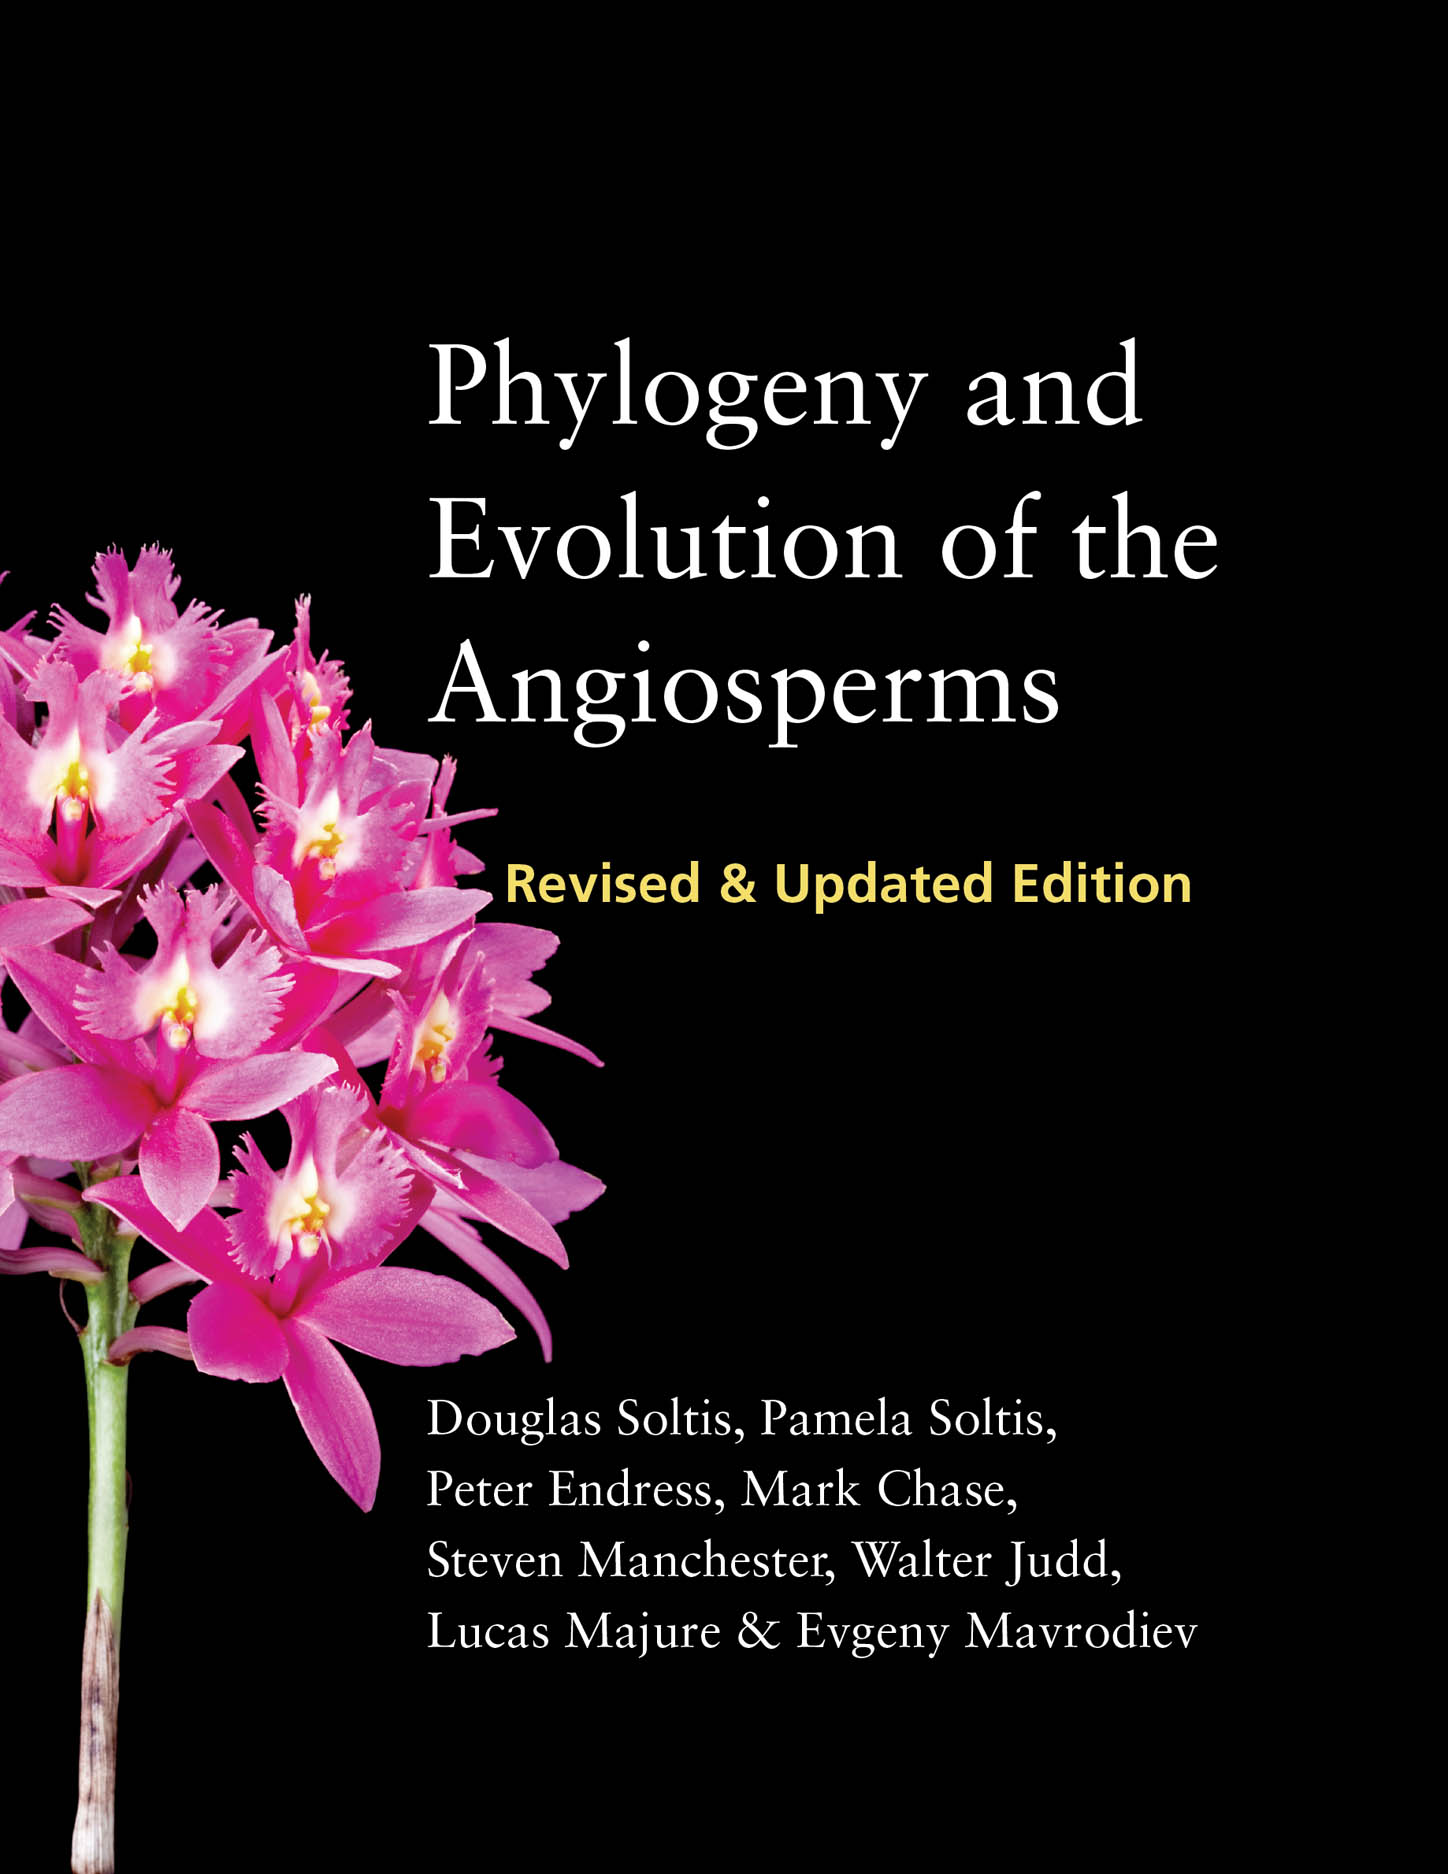 Phylogeny and Evolution of the Angiosperms